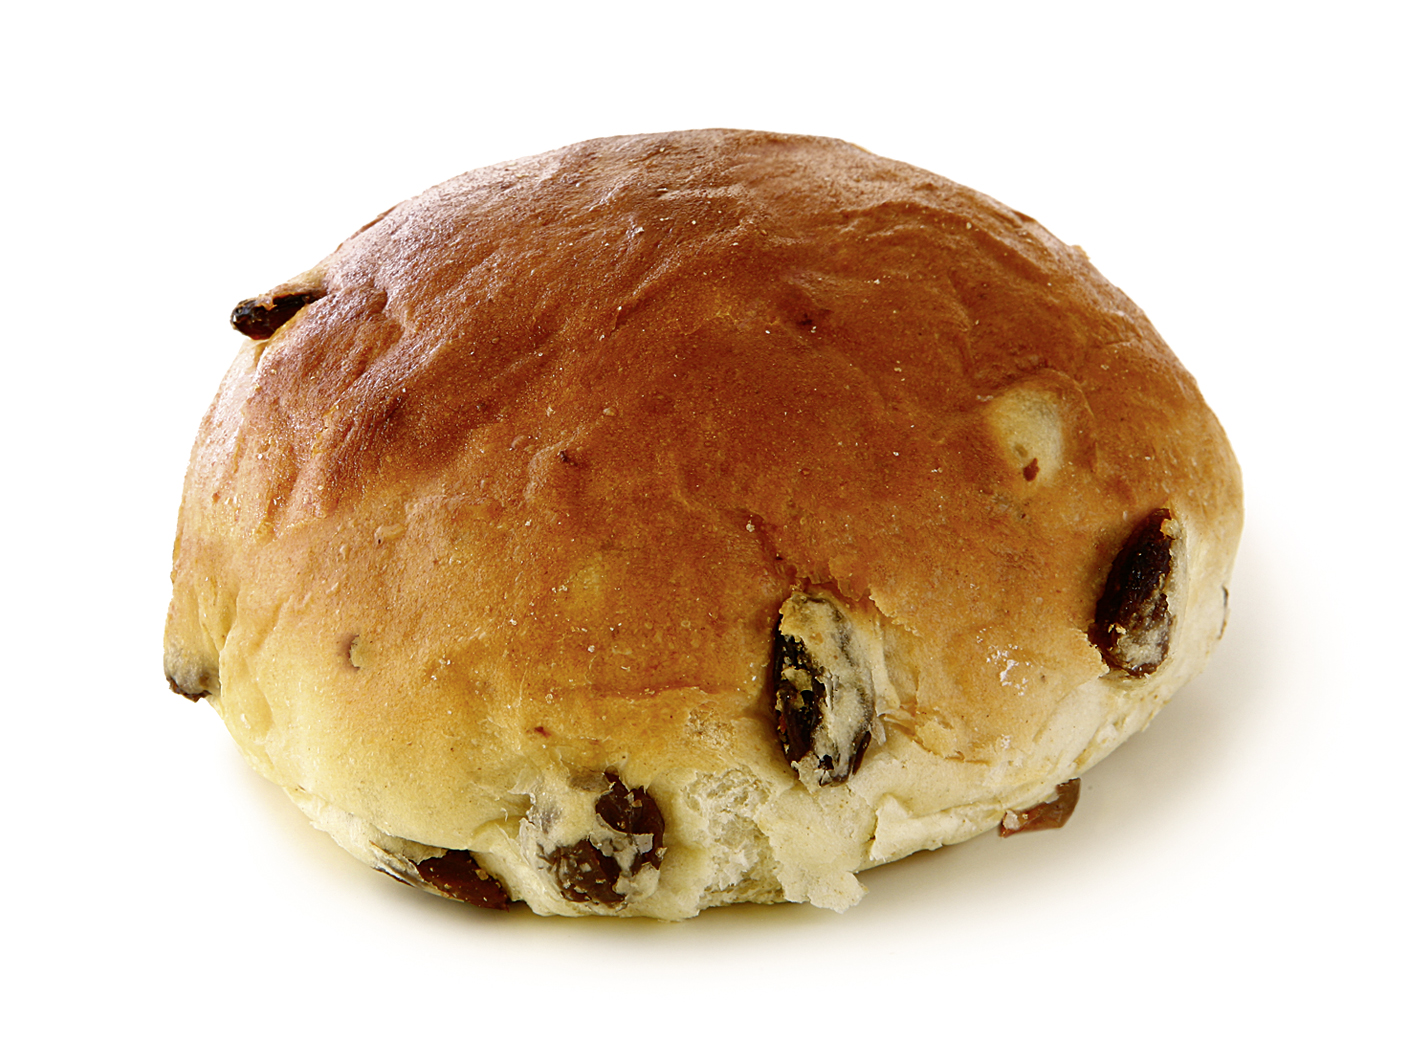 Raisin Roll - Soft wheat roll with 22% raisins/ thaw only